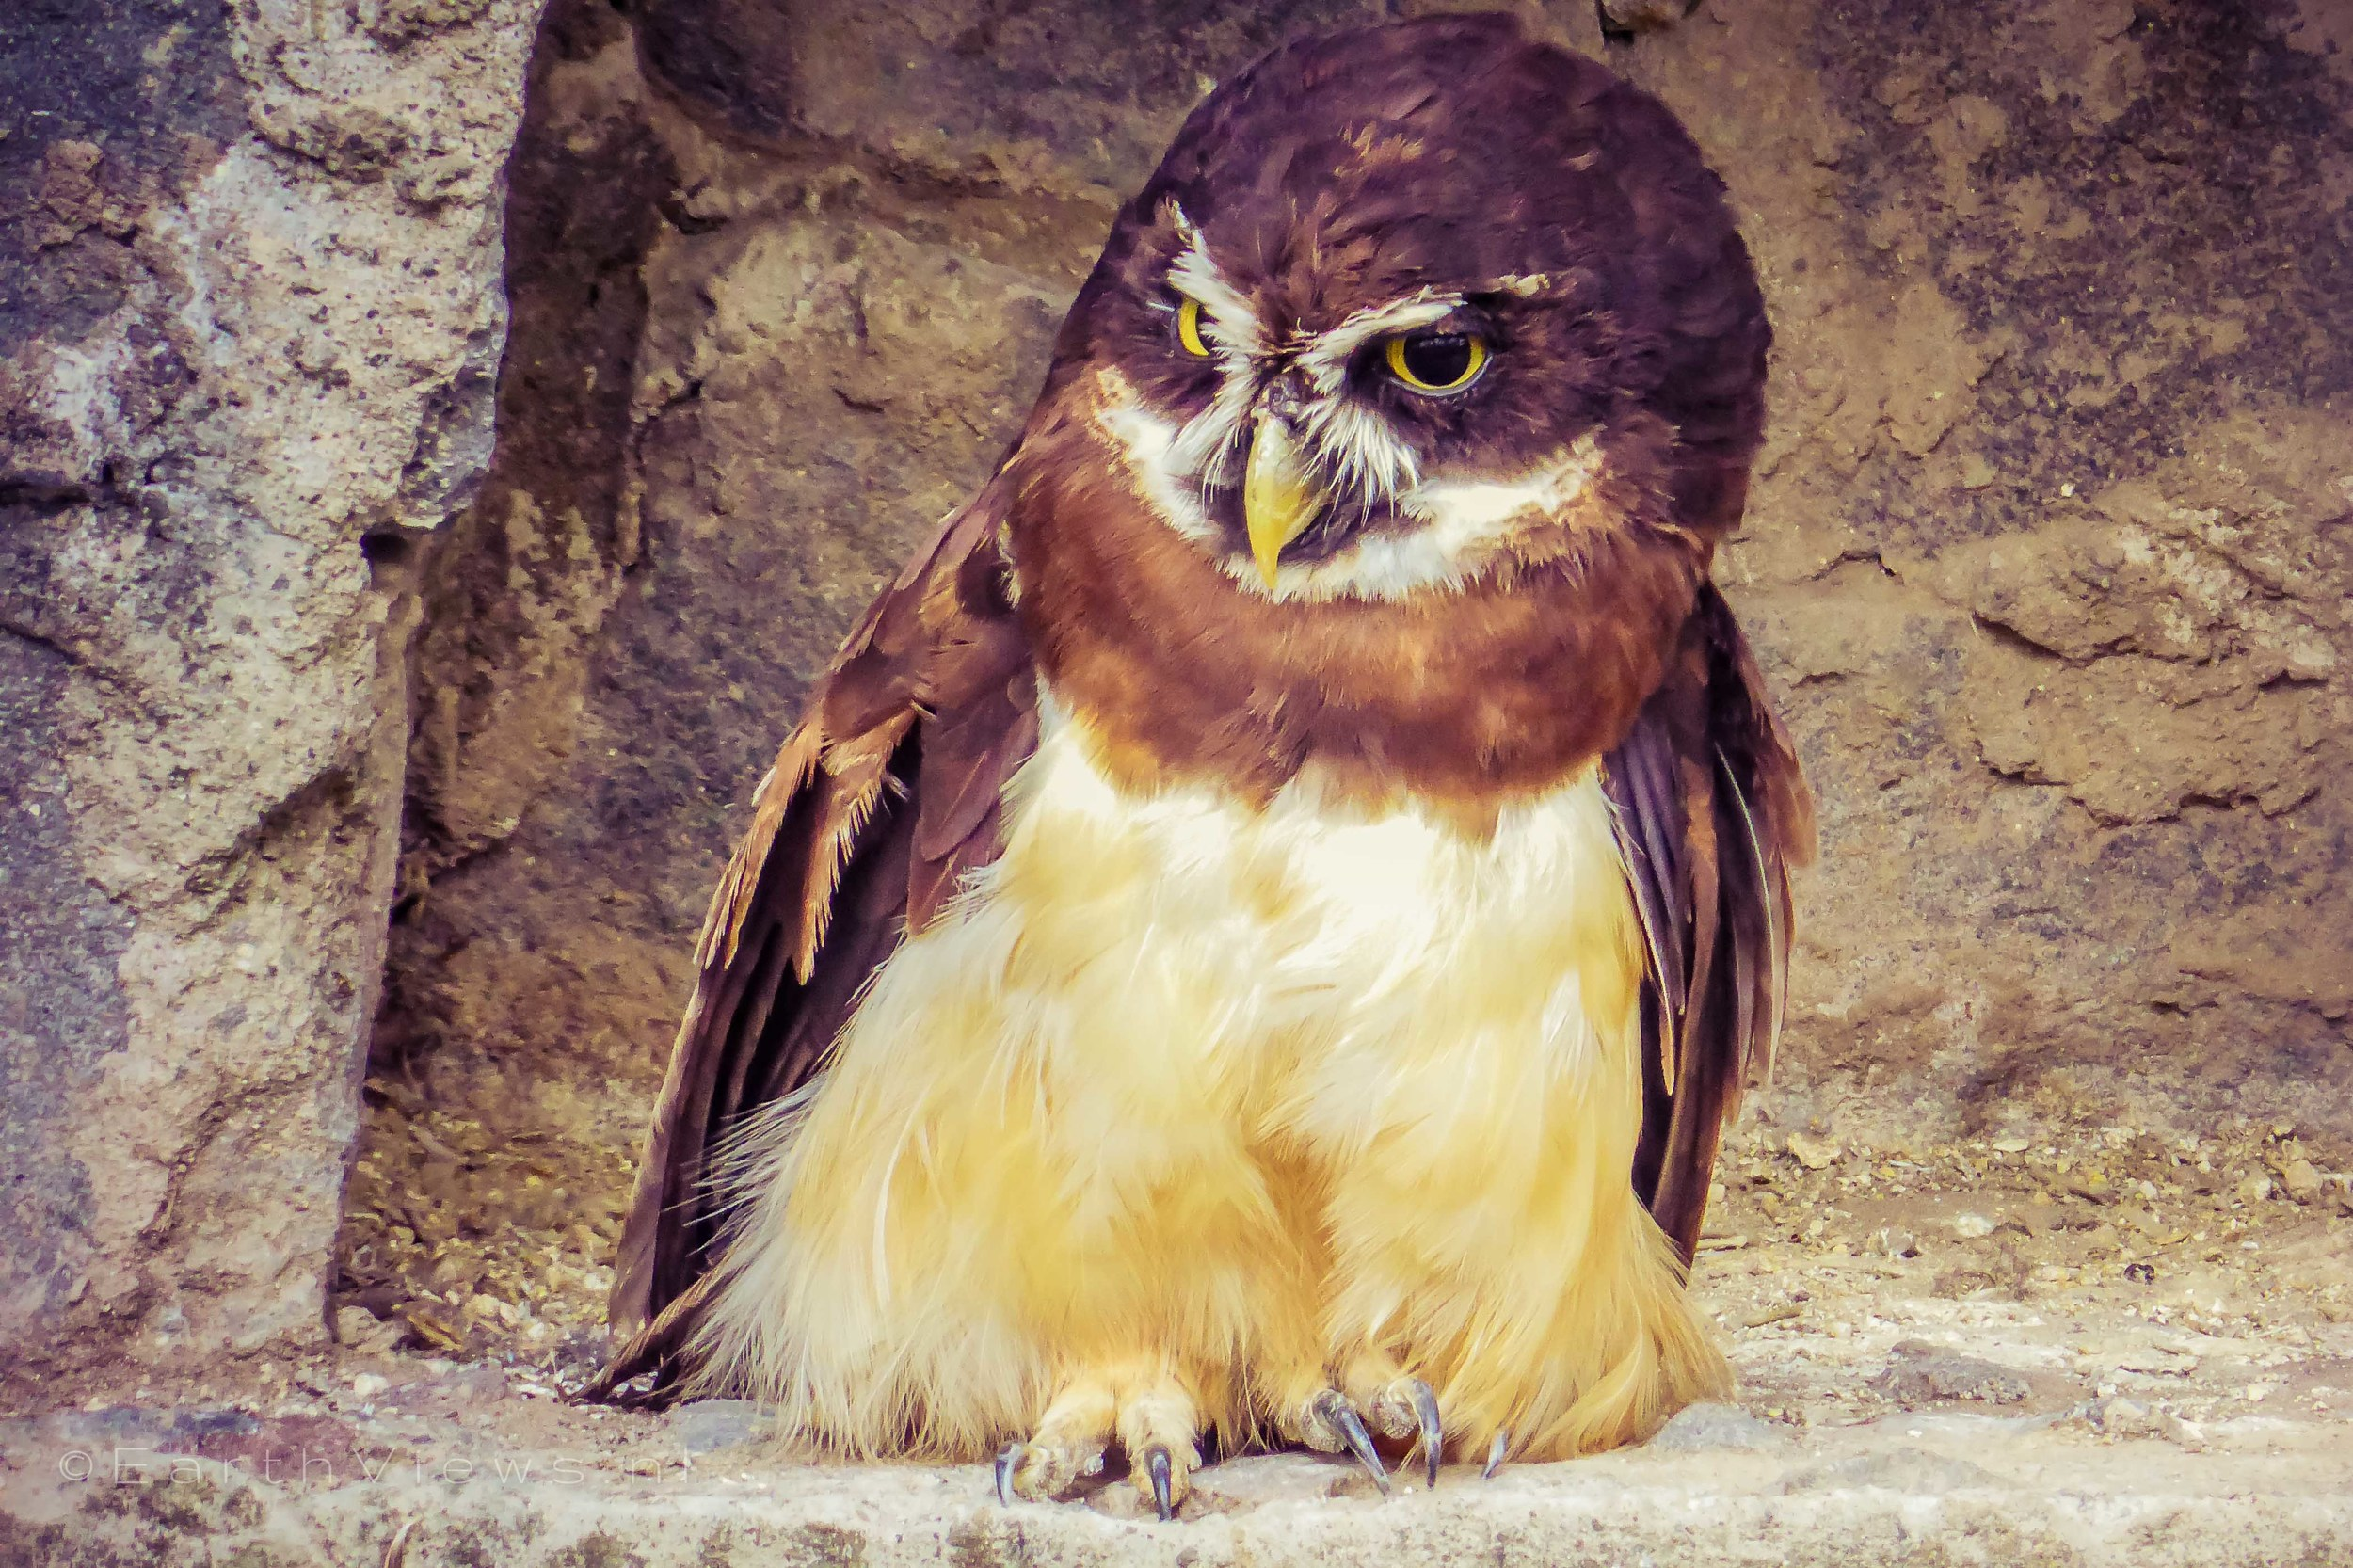 The Spectacled Owl.